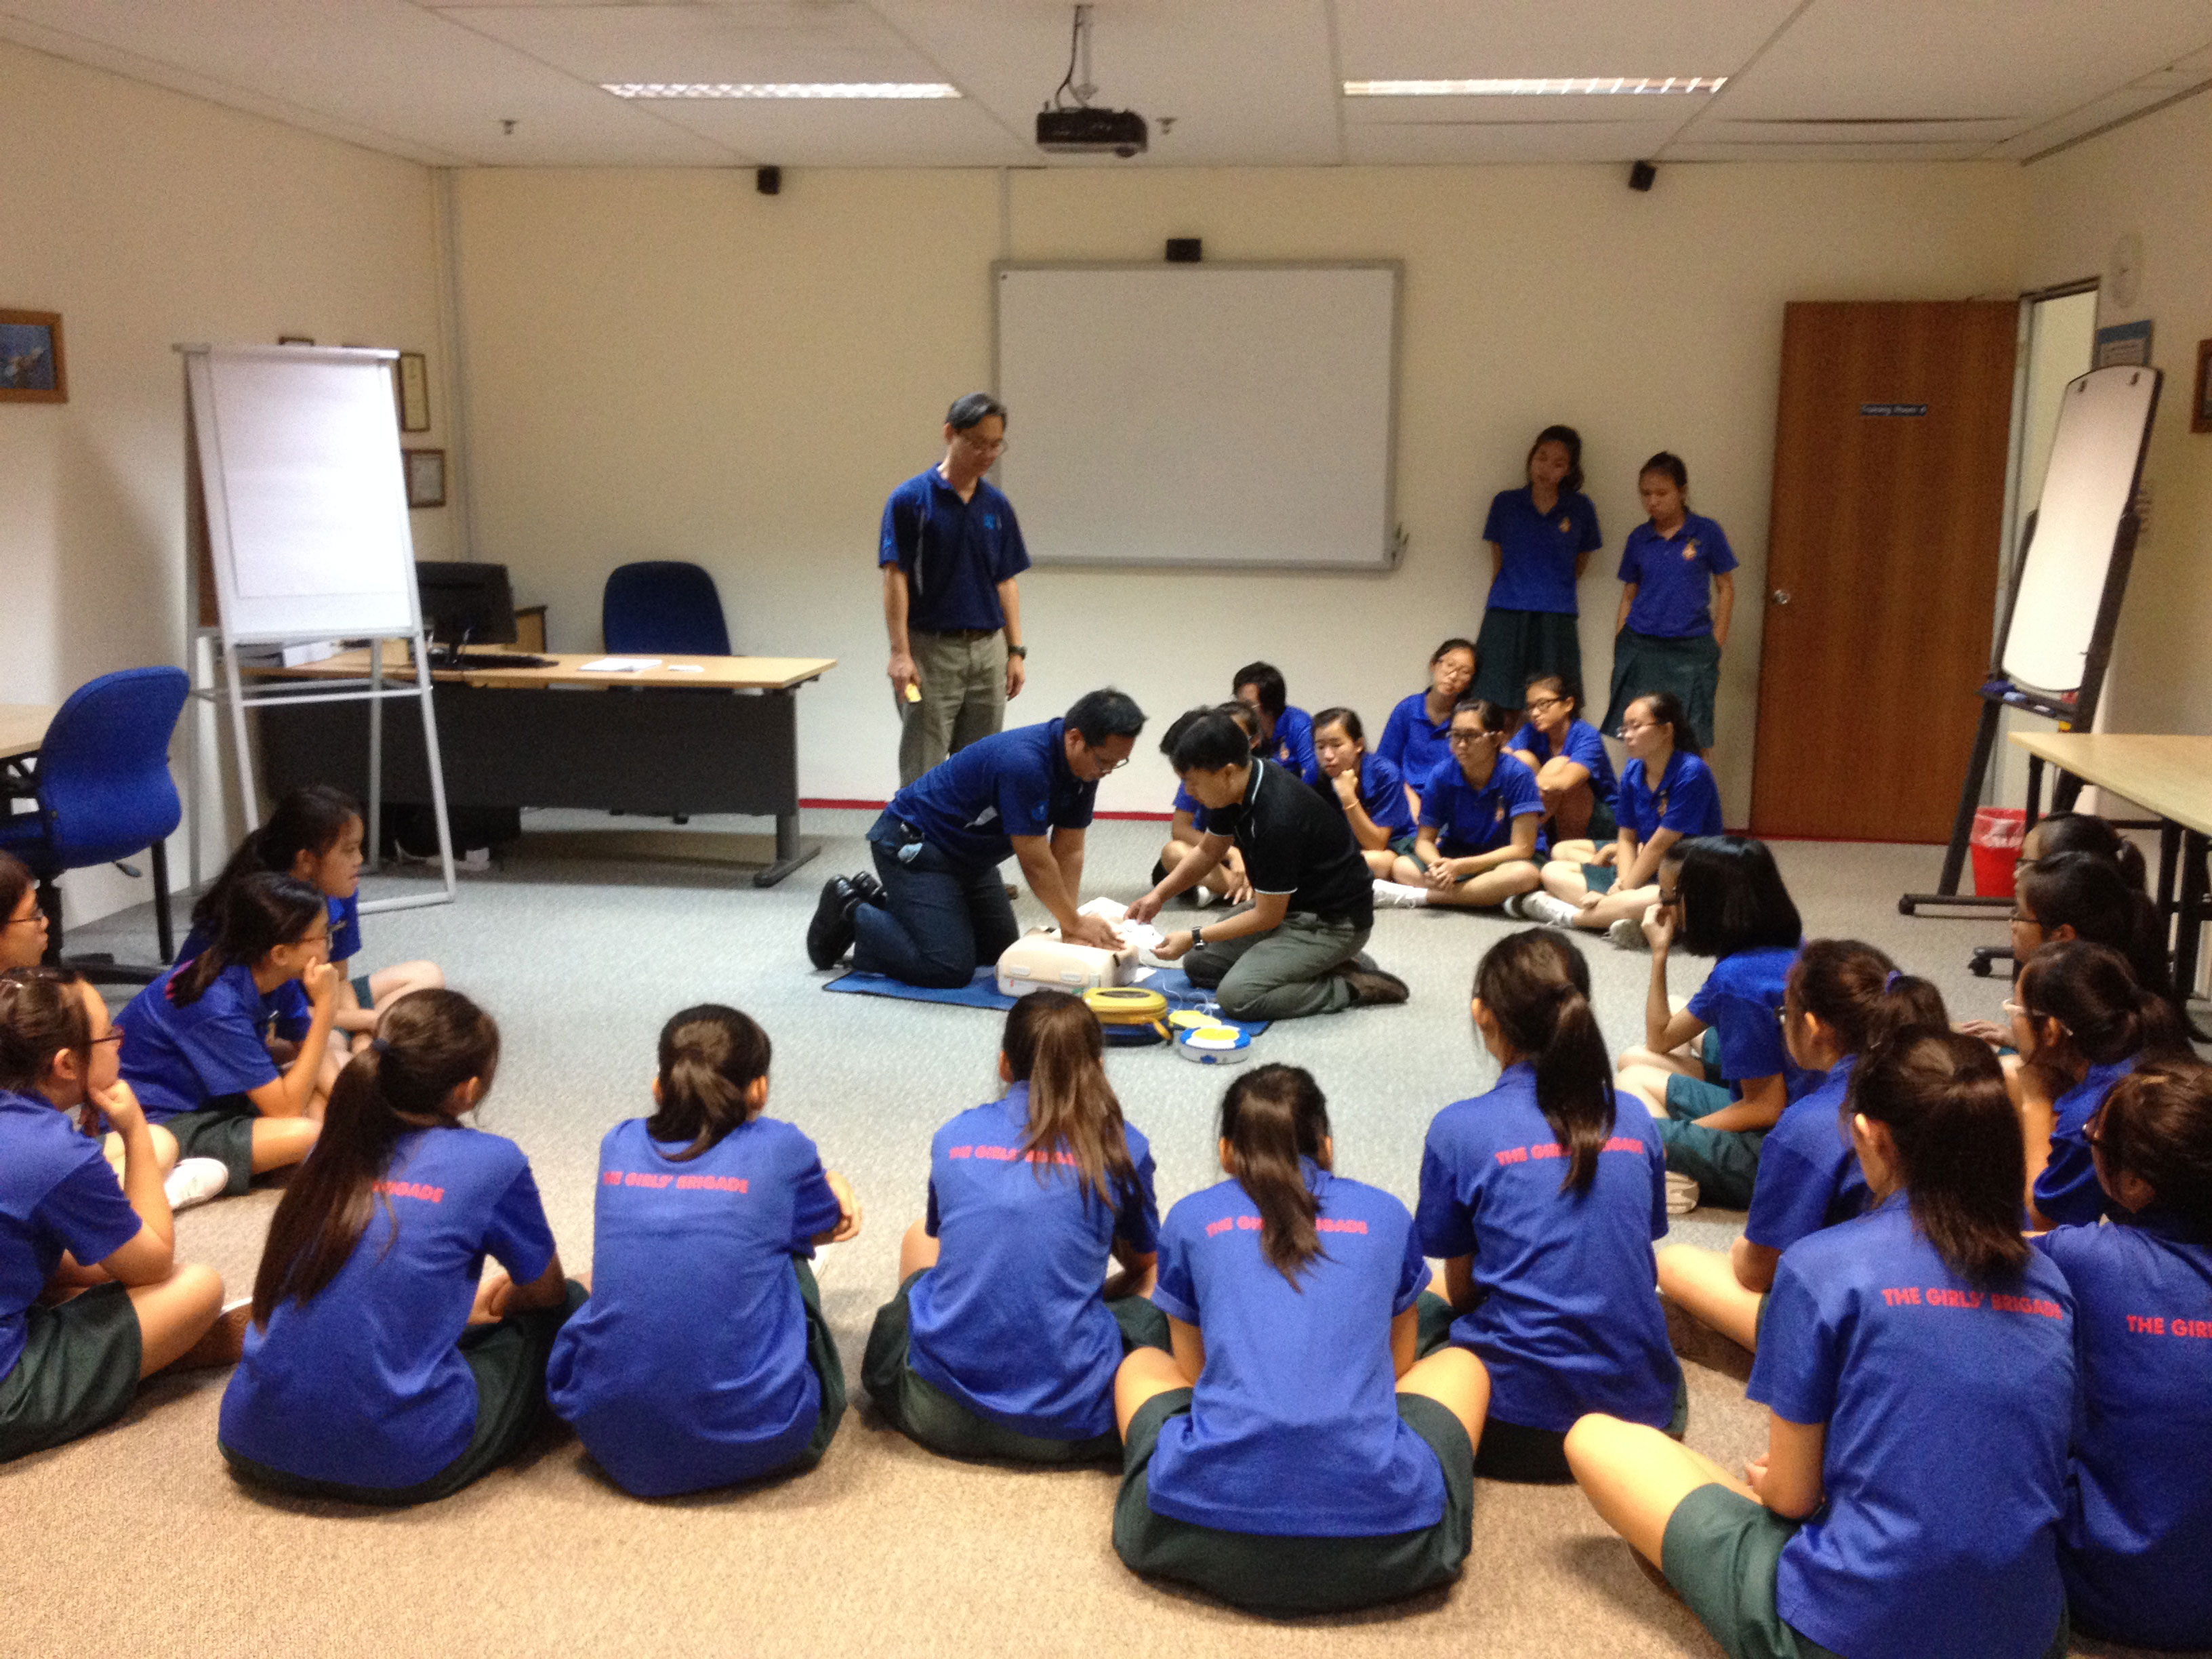 First Aid Course, Singapore, Jan 2014